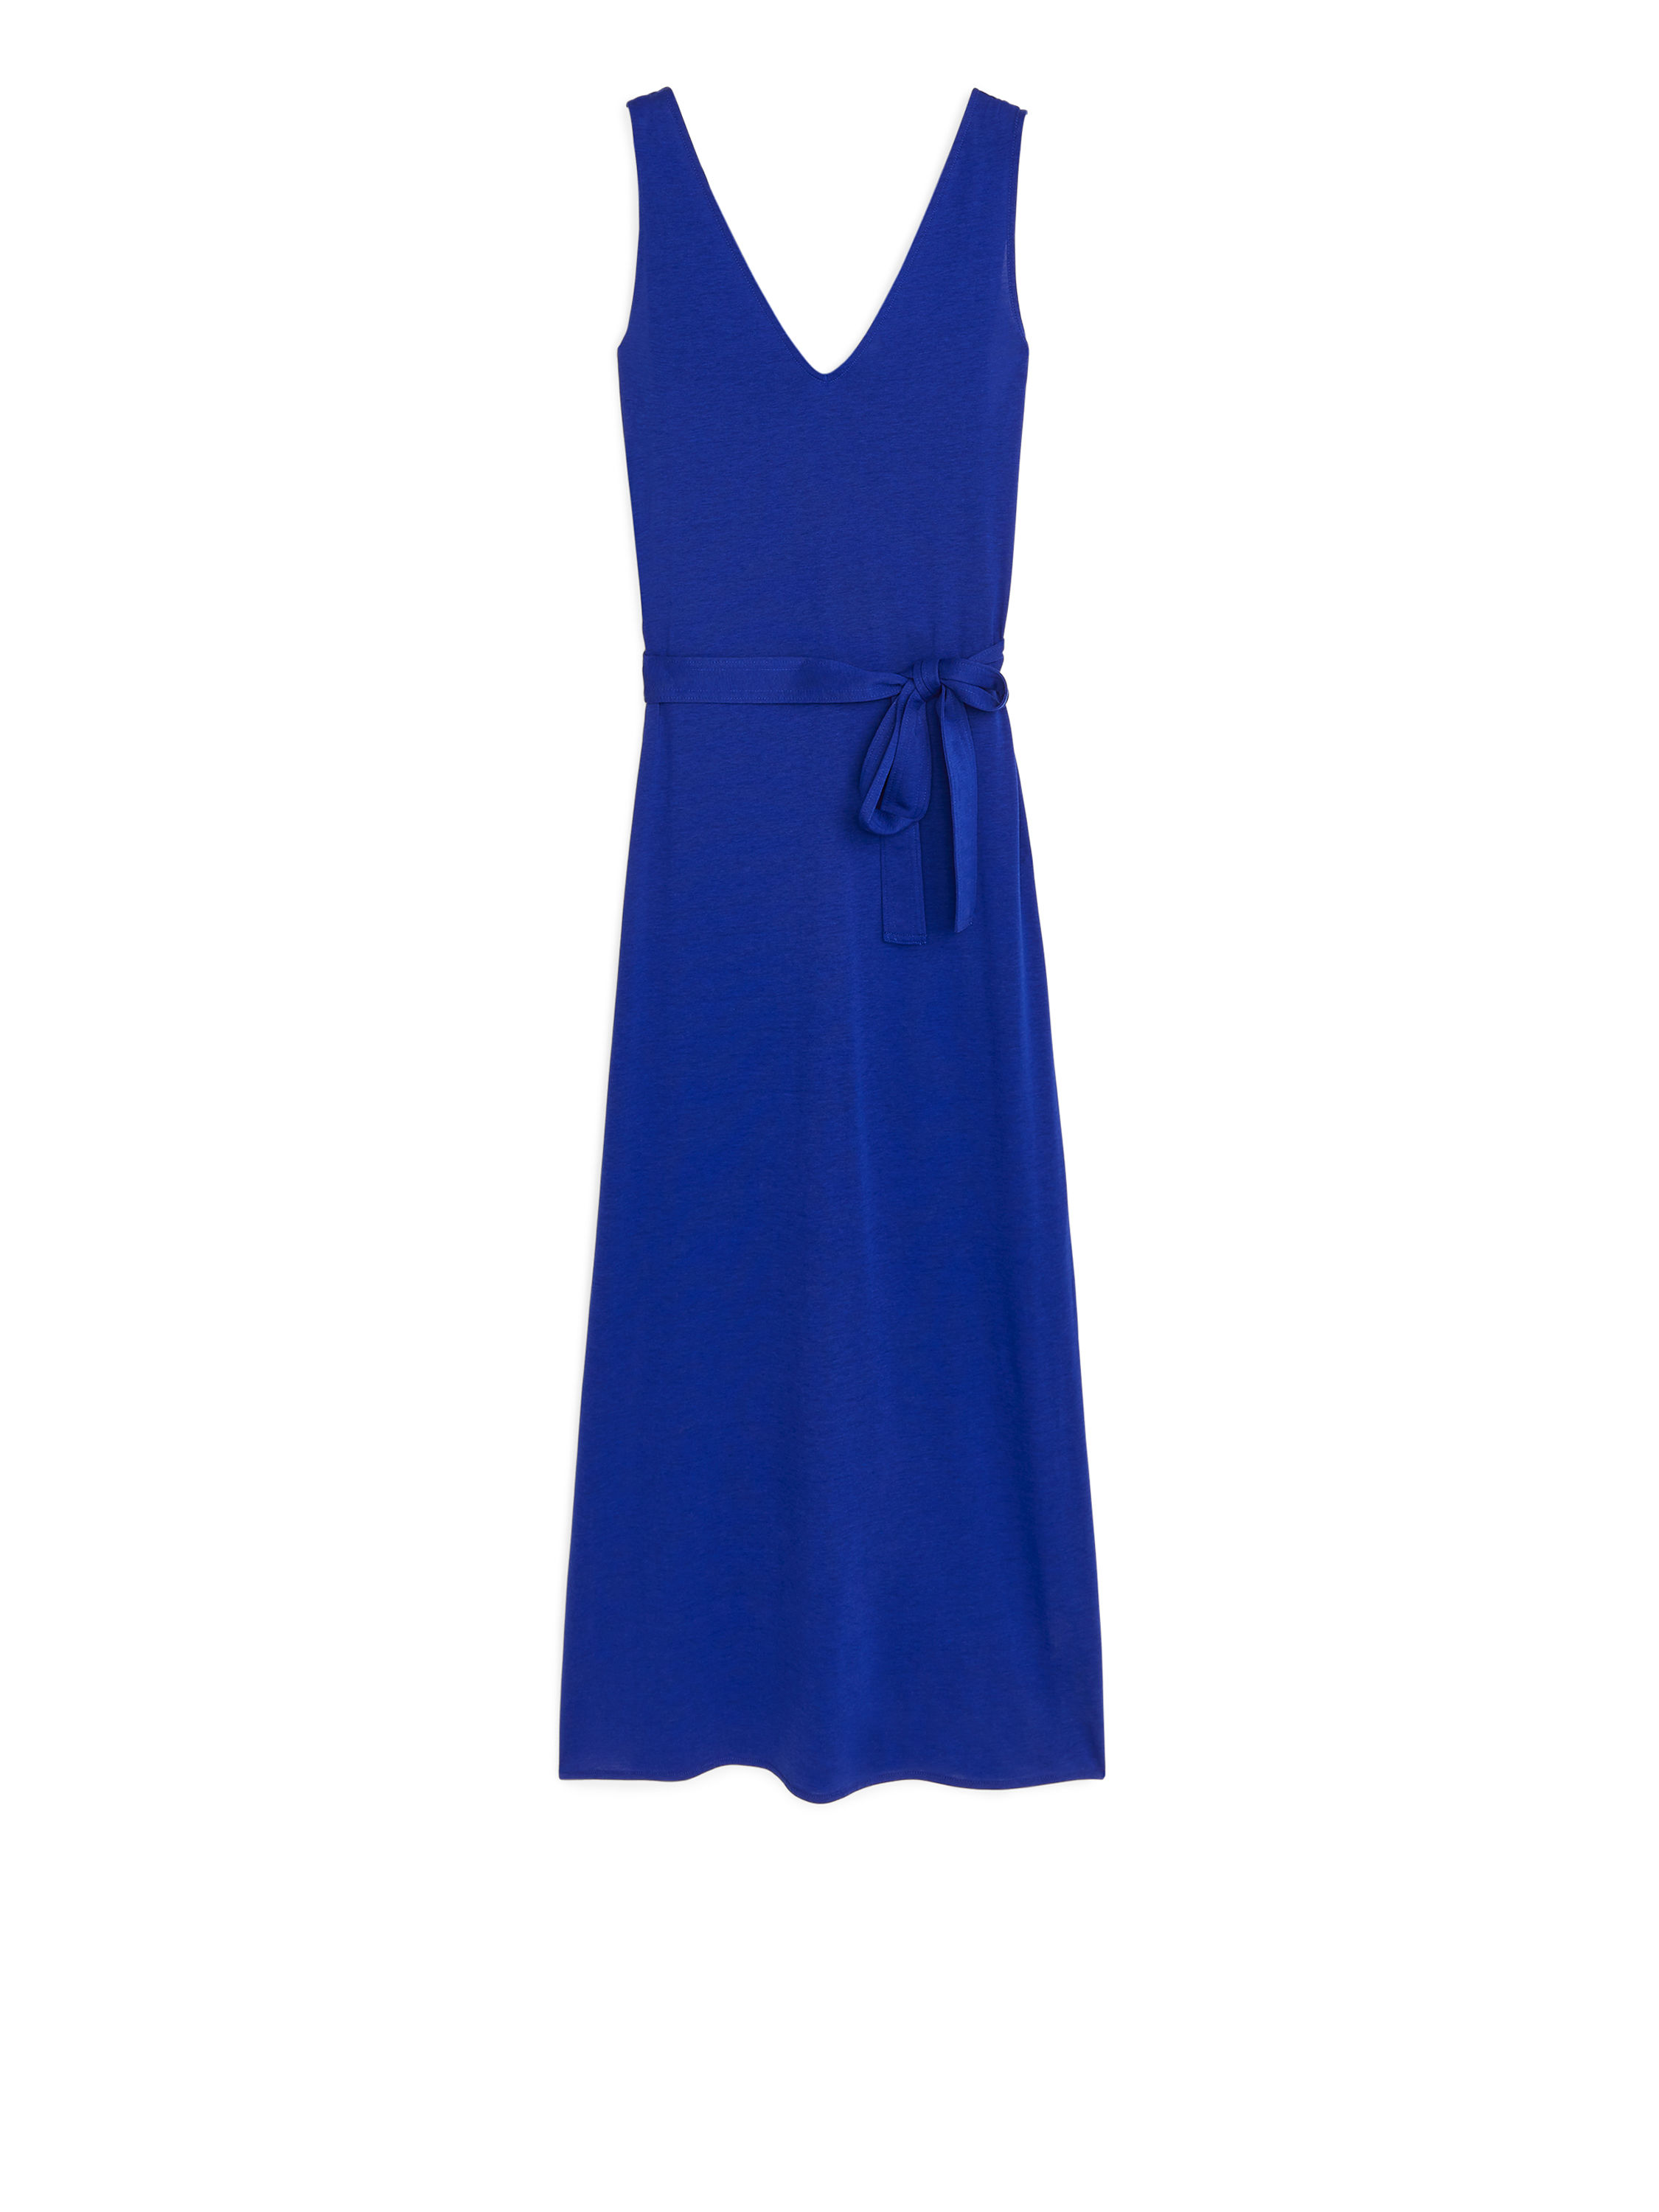 Fabric Swatch image of Arket v-neck jersey dress in blue